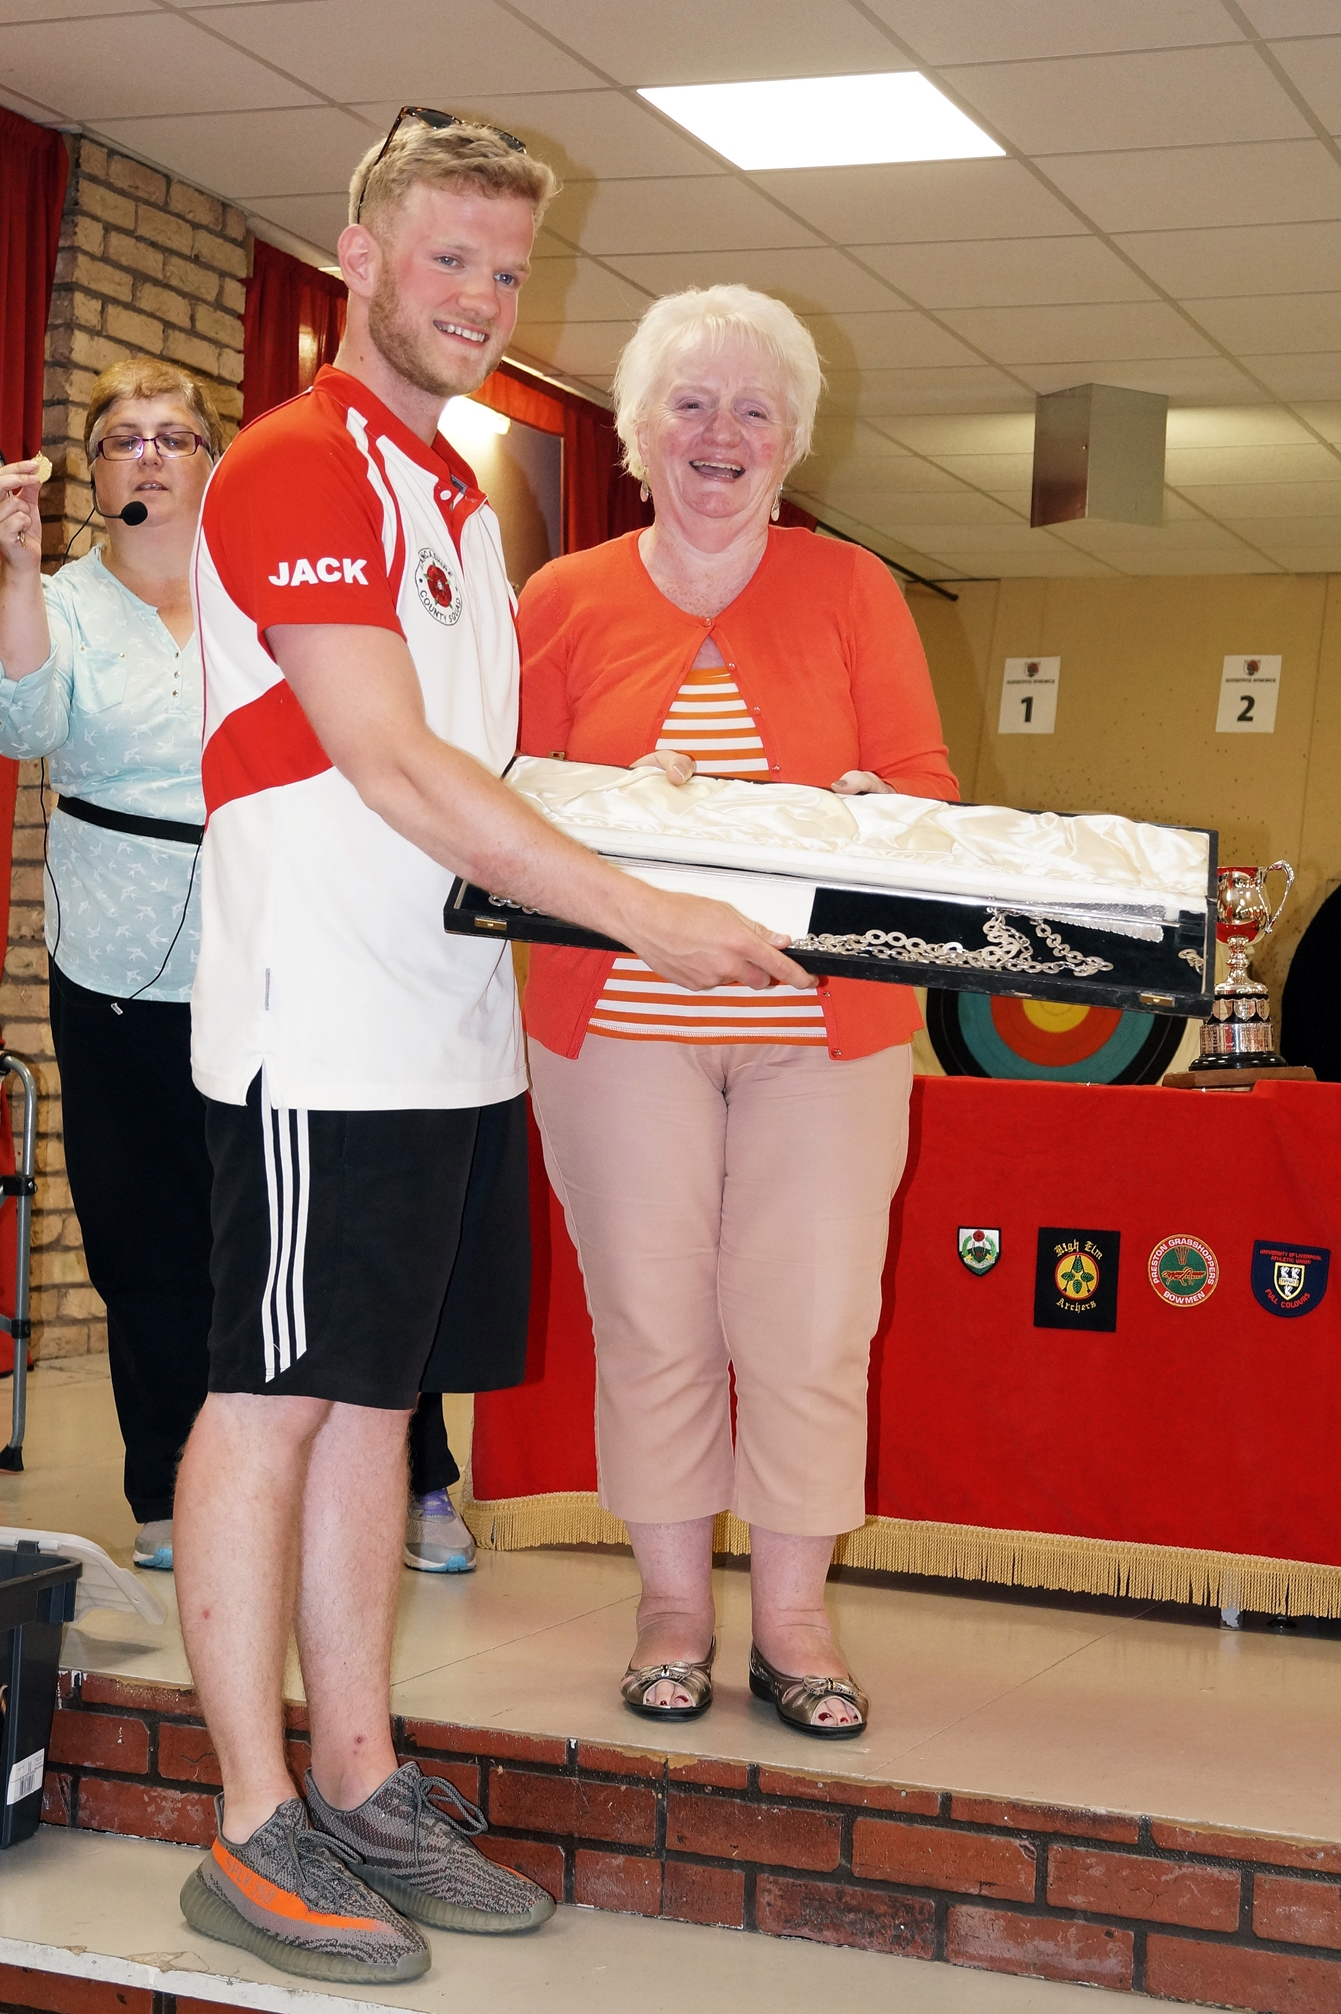 Archery ace Jack's on target for title at the double . . .